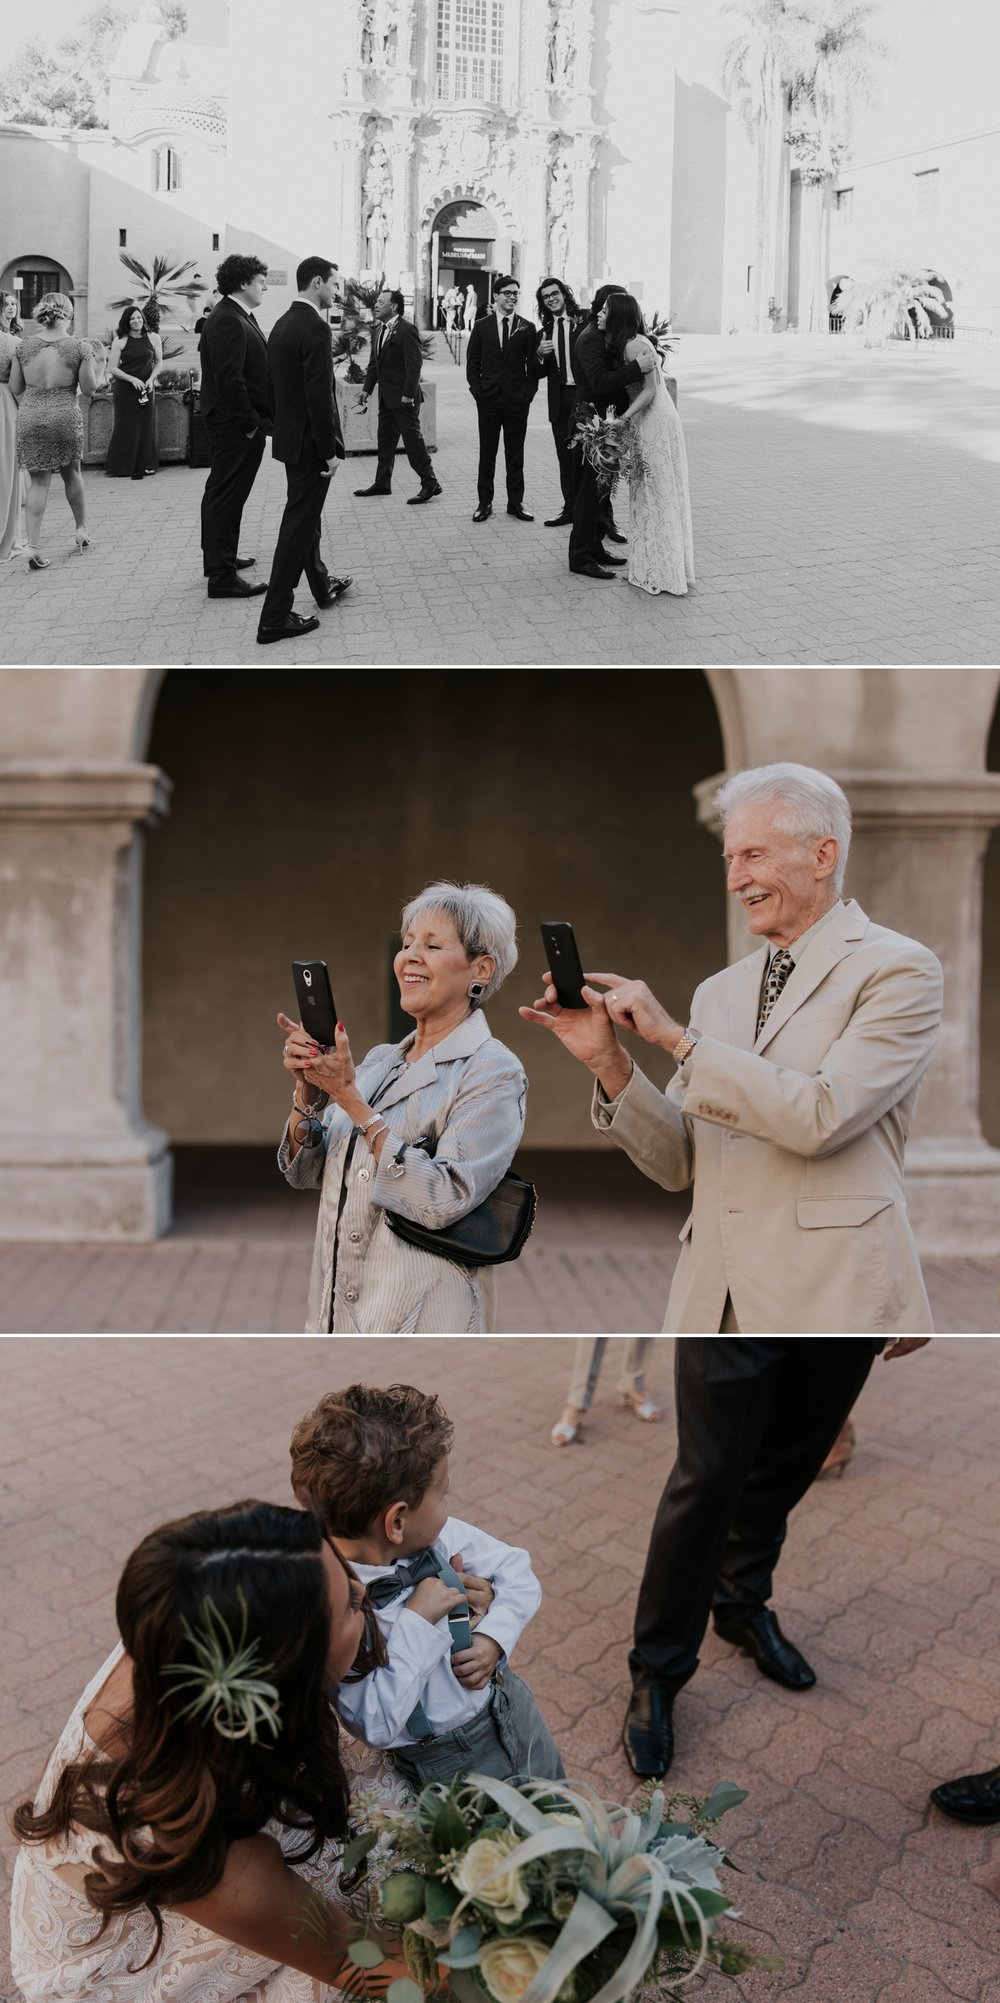 Wedding party portraits in Balboa park by San Diego photographer Paige Nelson